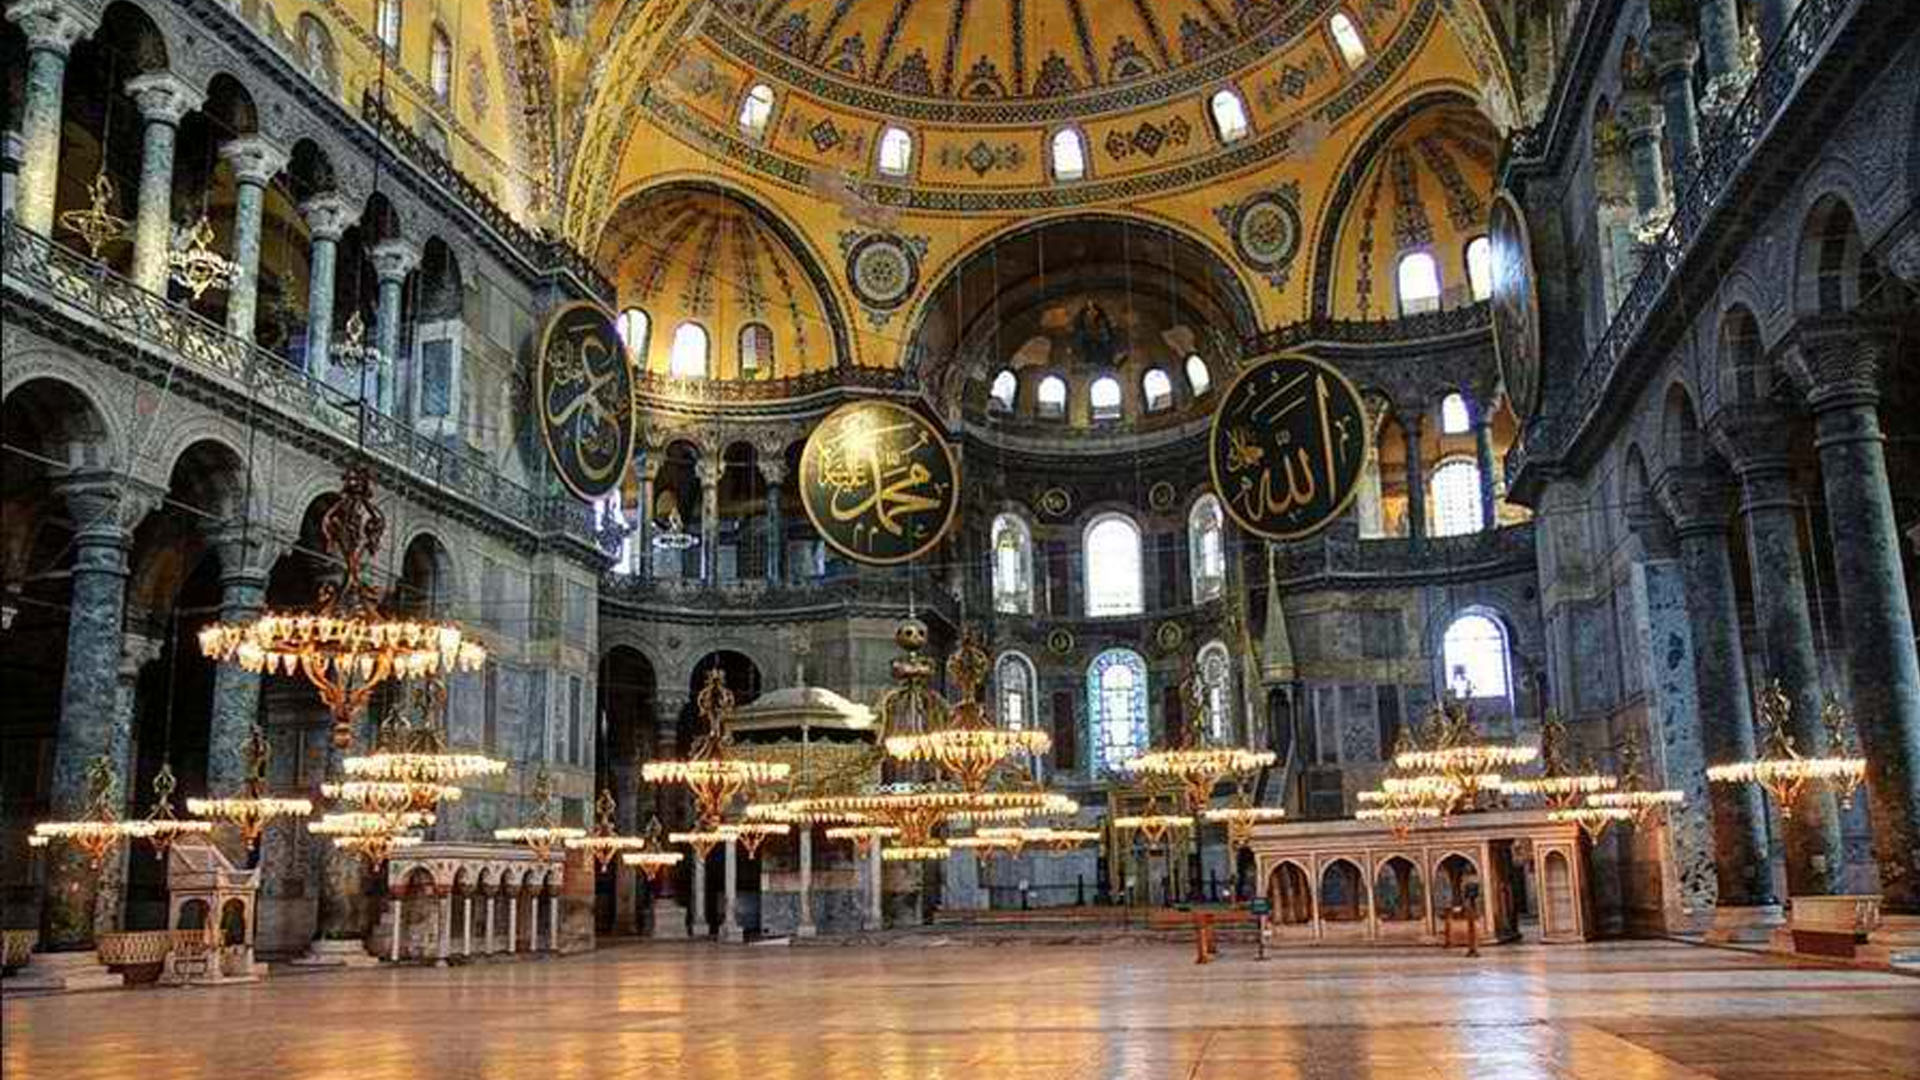 HAGIA SOPHIA CHURCH